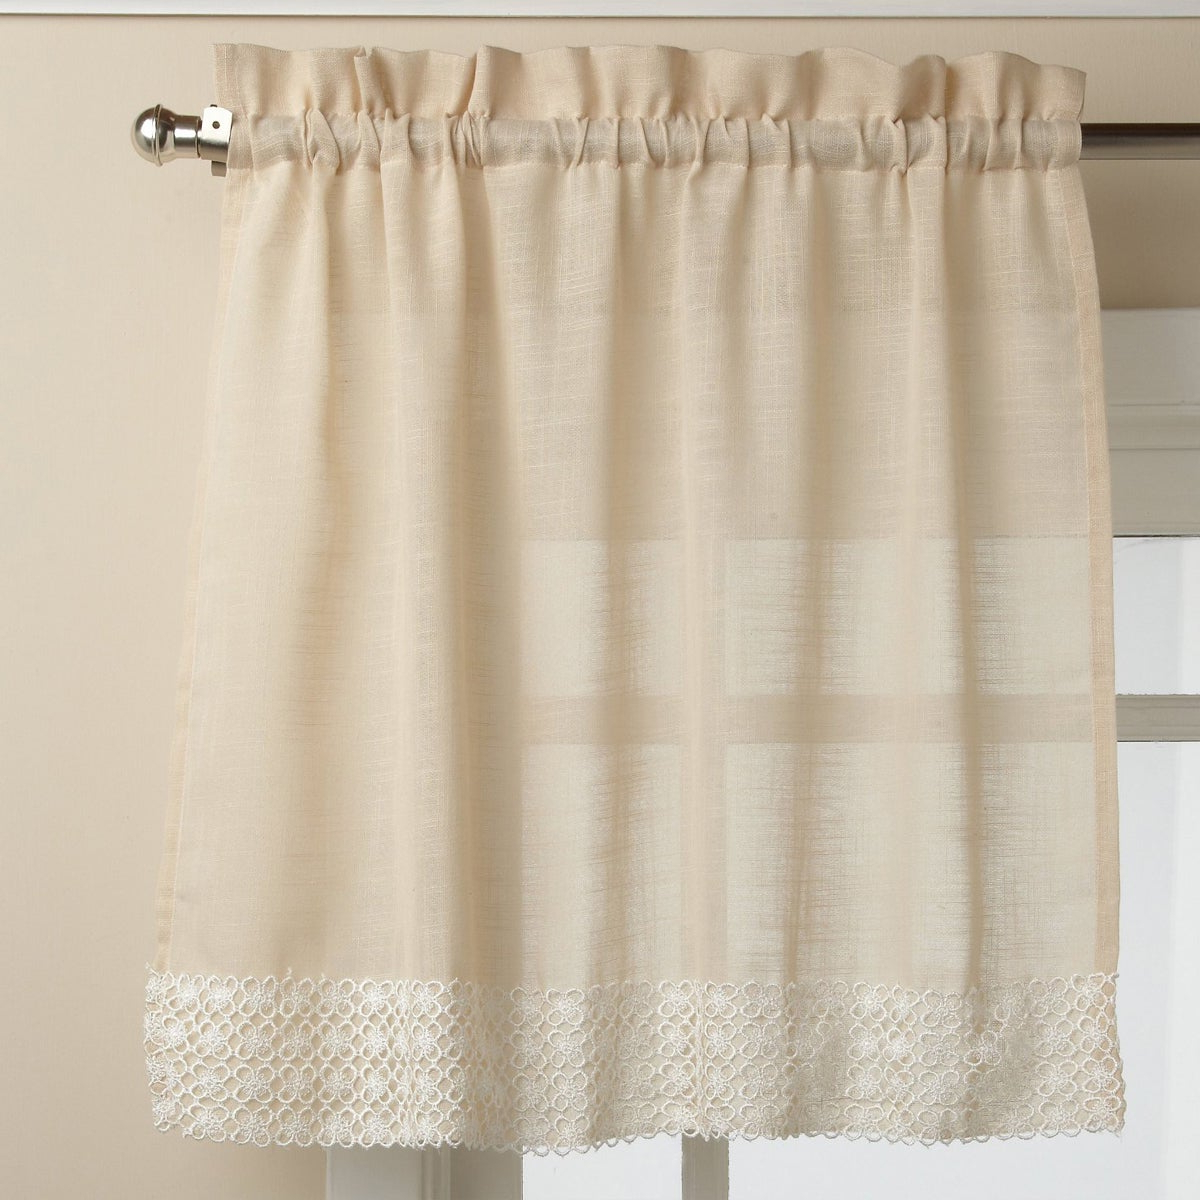 French Vanilla Country Style Curtain Parts With White Daisy Lace Accent Tier, Swag And Valance Options Inside Popular French Vanilla Country Style Curtain Parts With White Daisy Lace Accent (View 2 of 20)